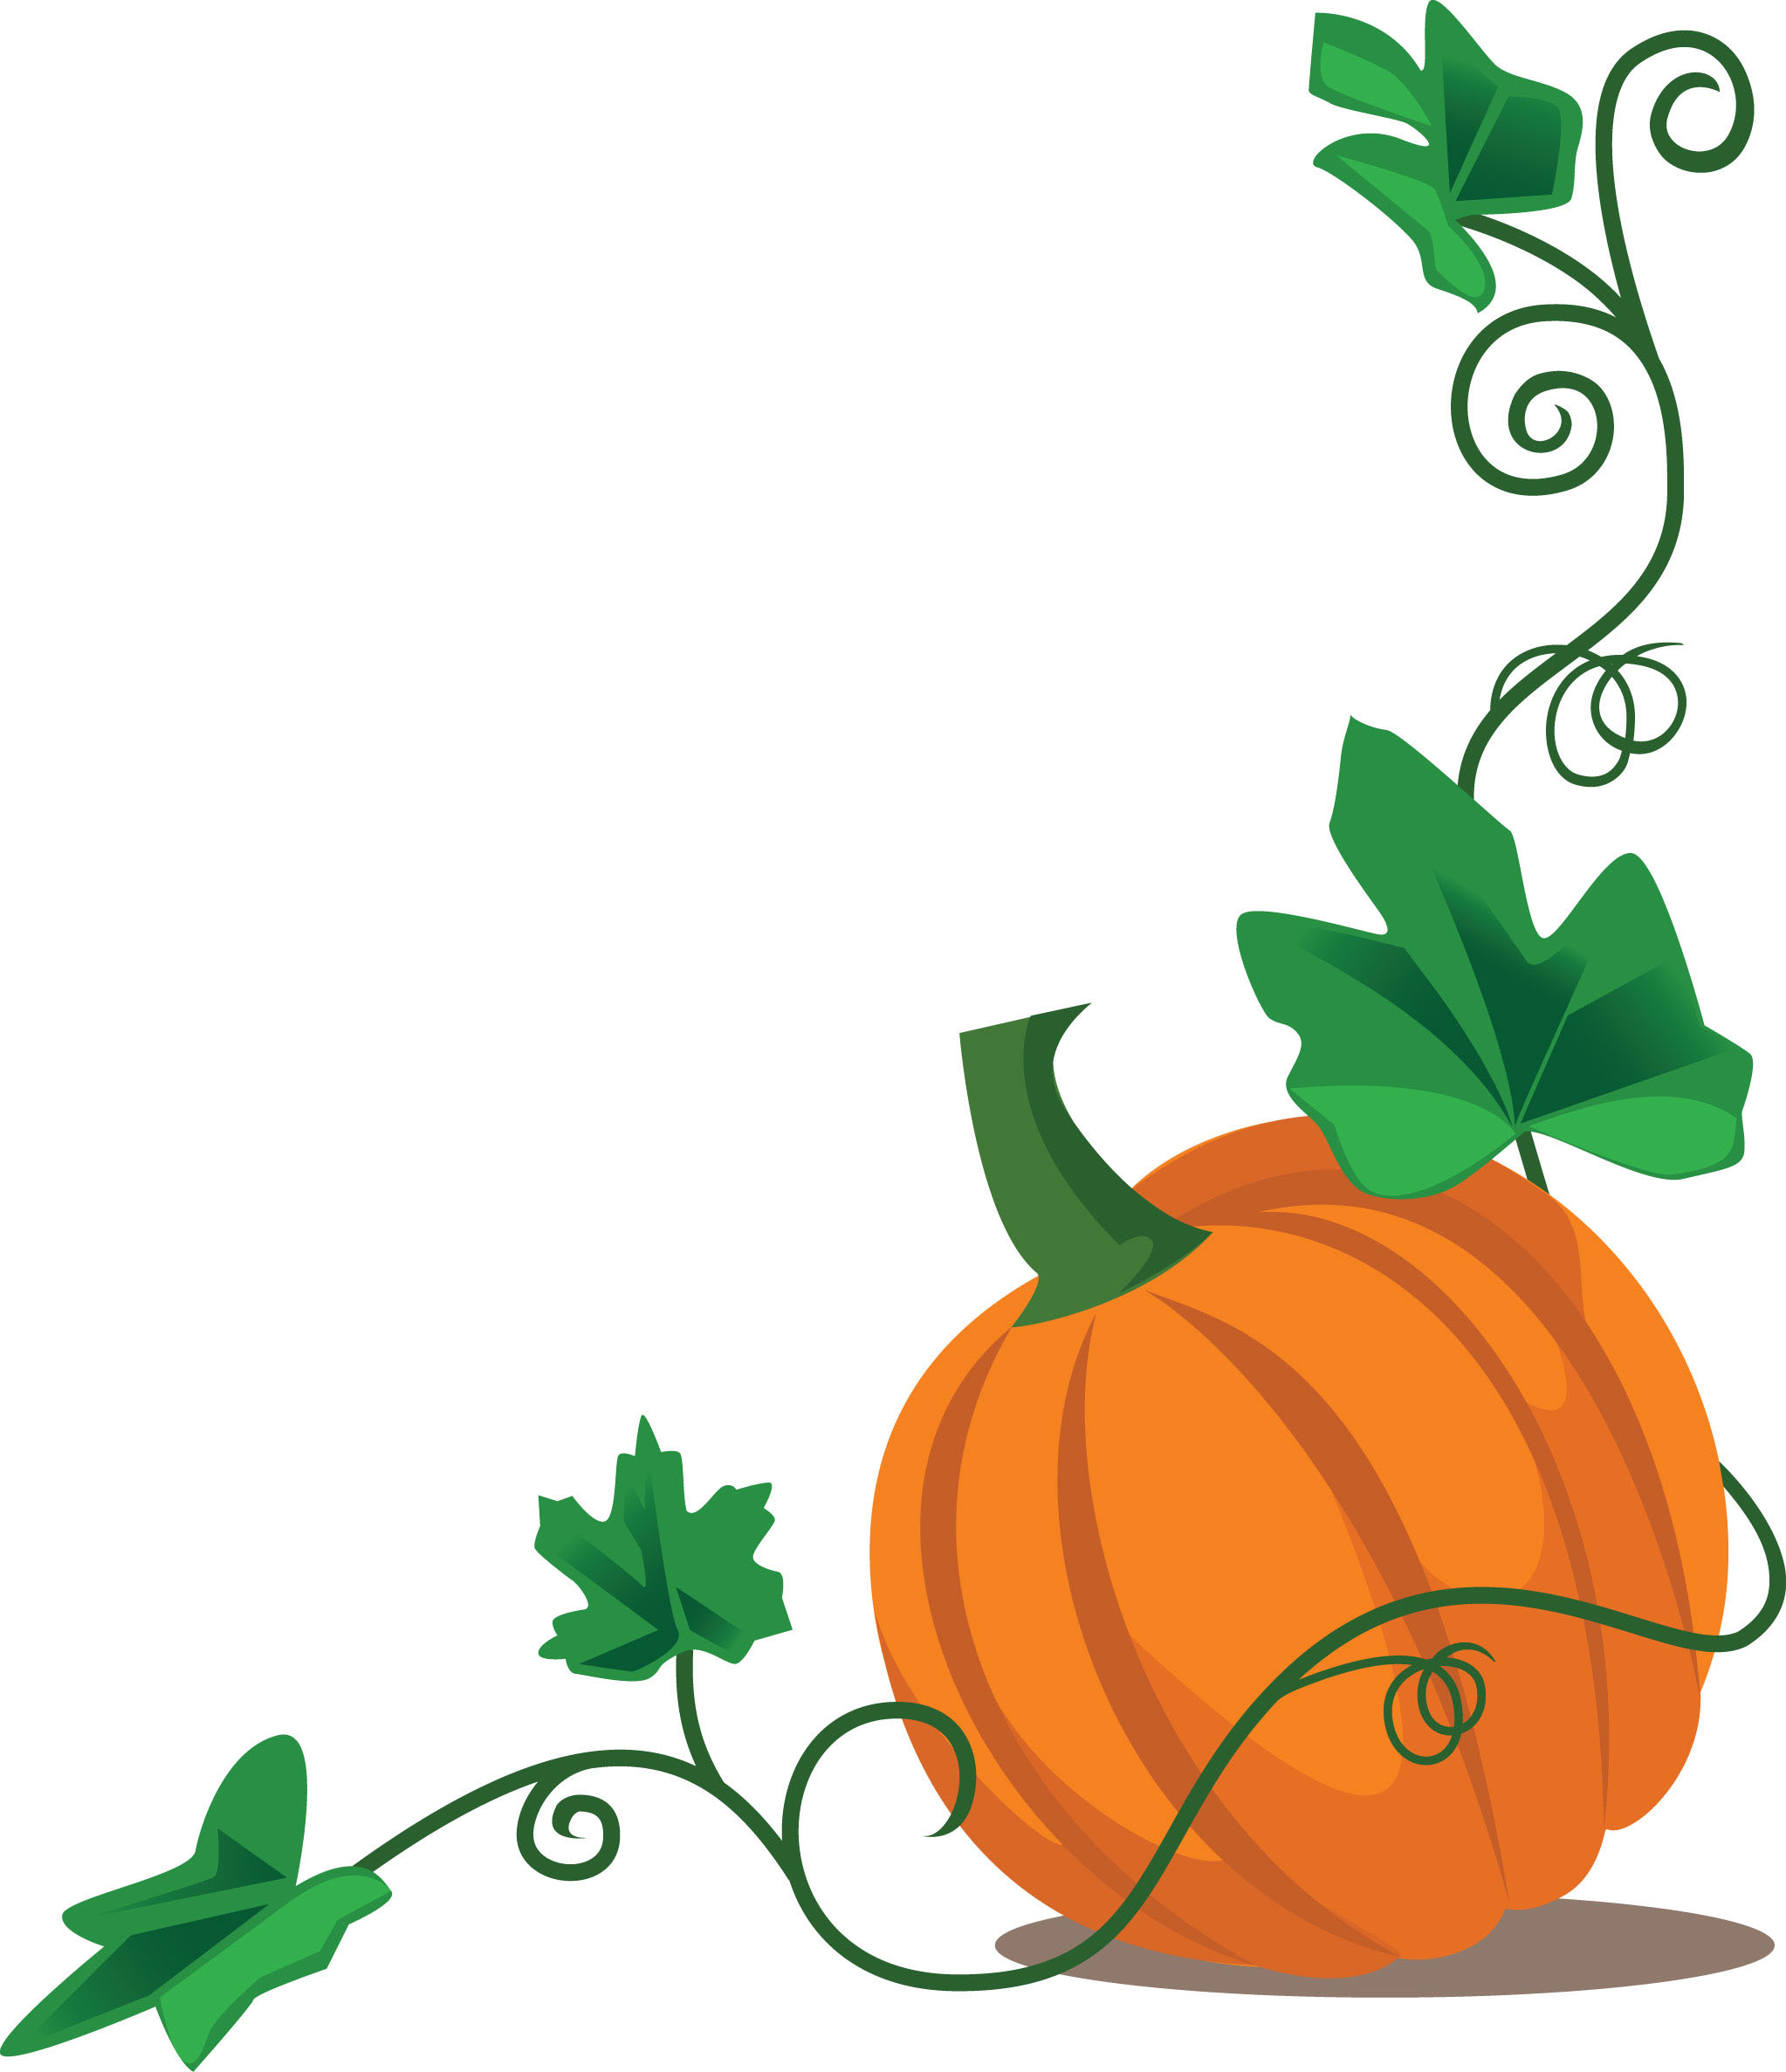 Carneval clipart church festival Harvest Best #14612 festival Fall